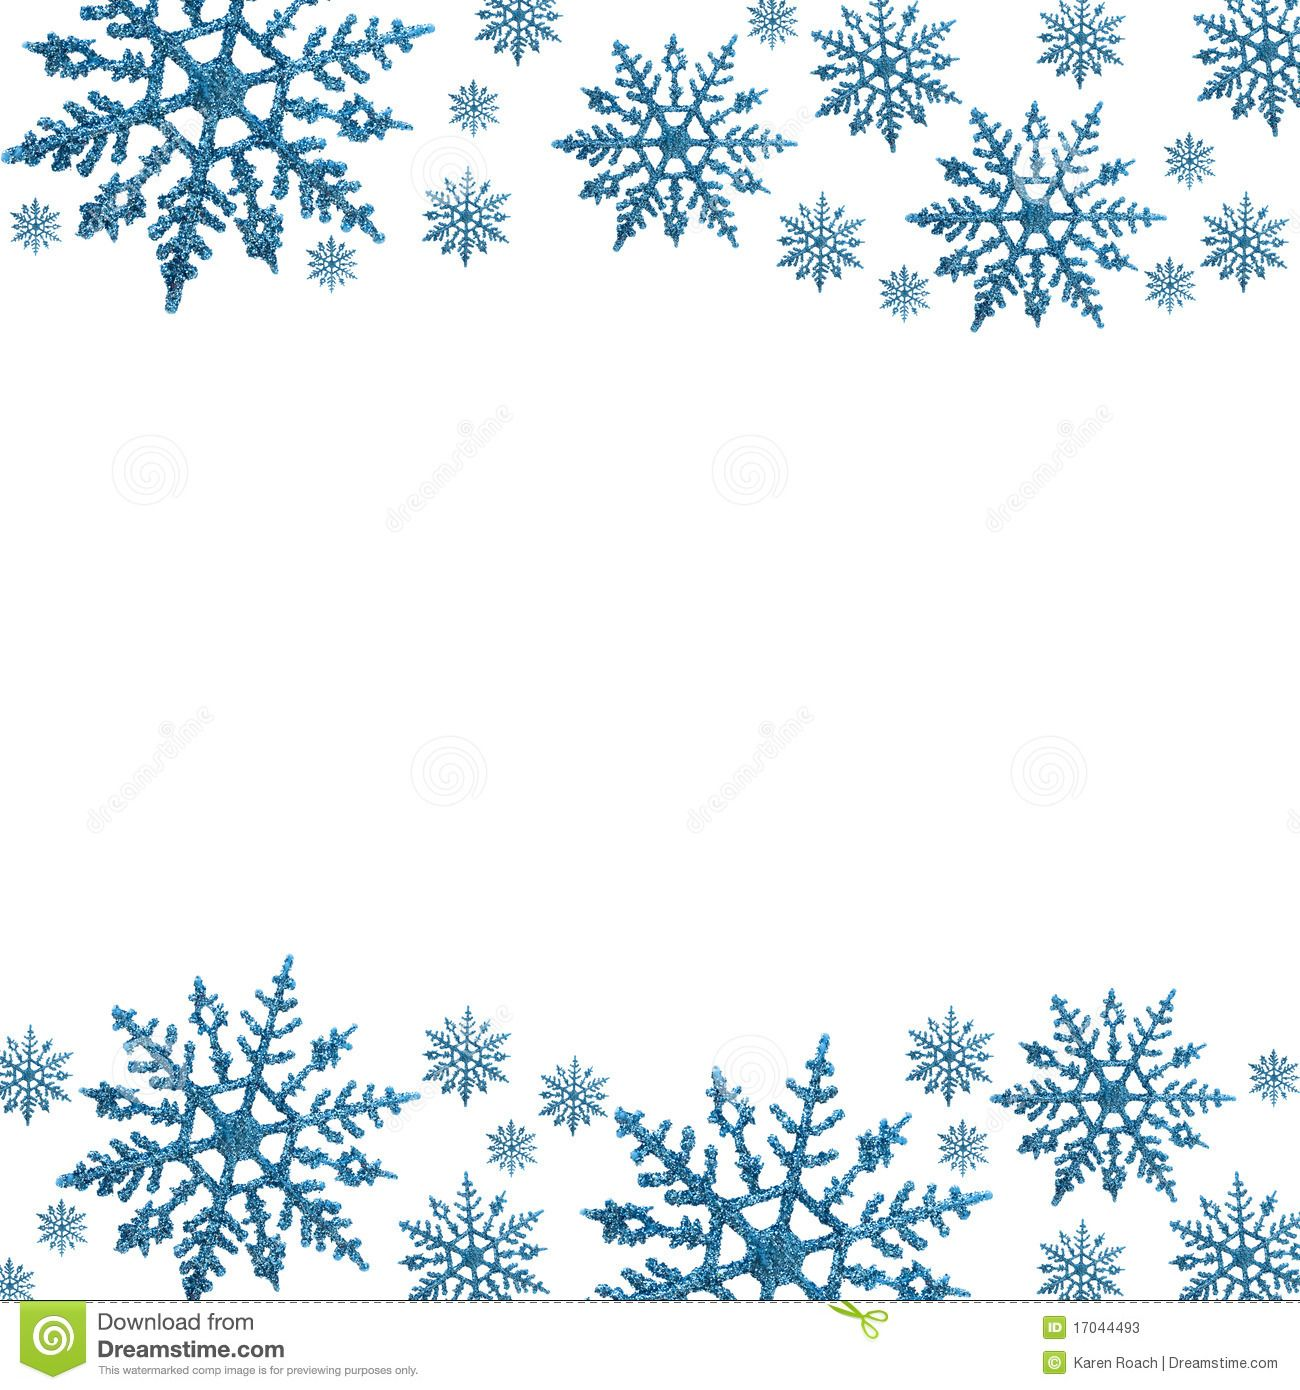 image Winter borders clipart. Border free large images.